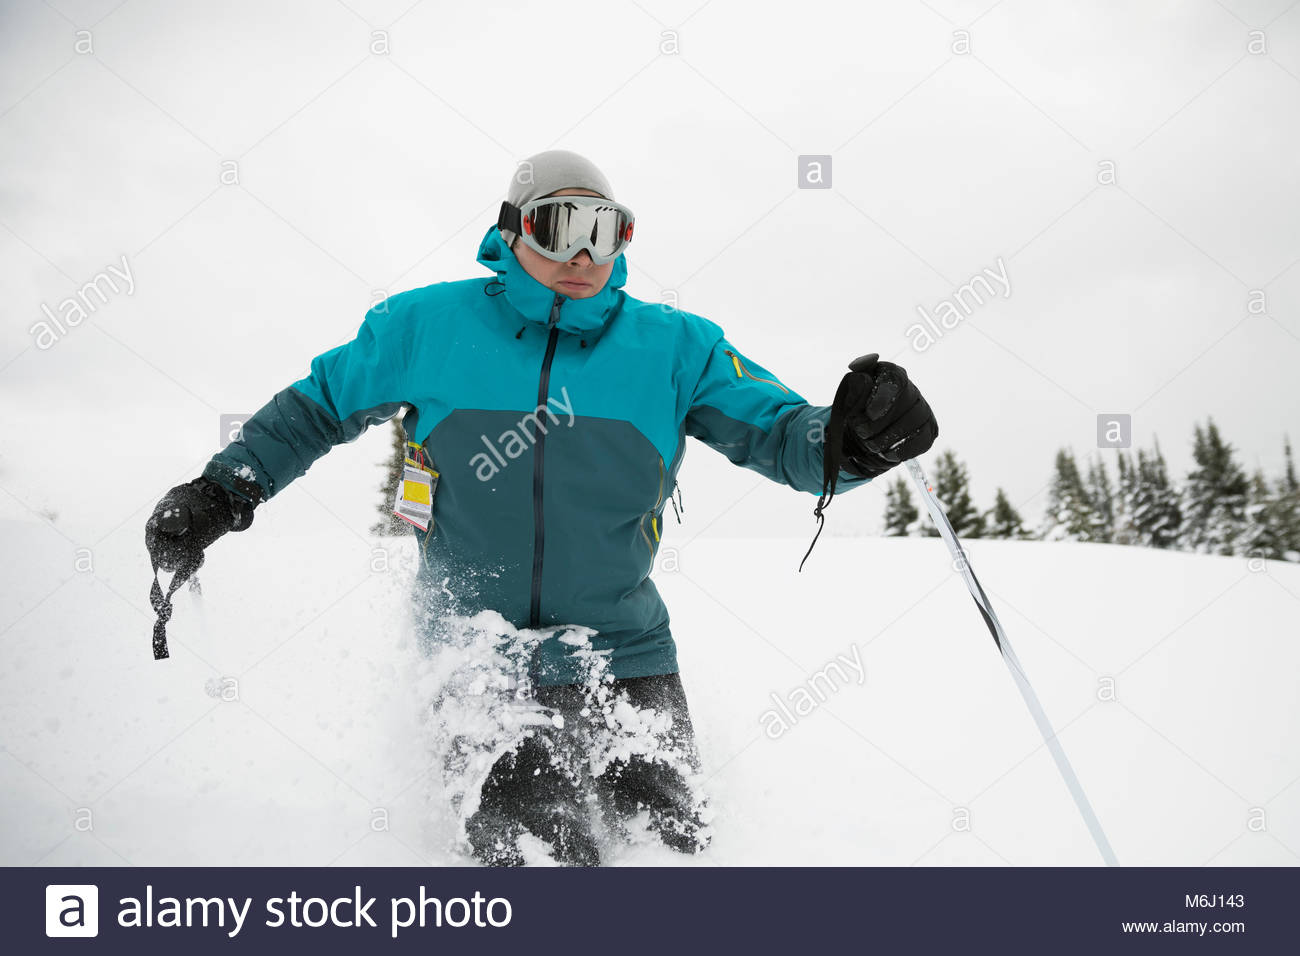 Male skier skiing in snow - Stock Image